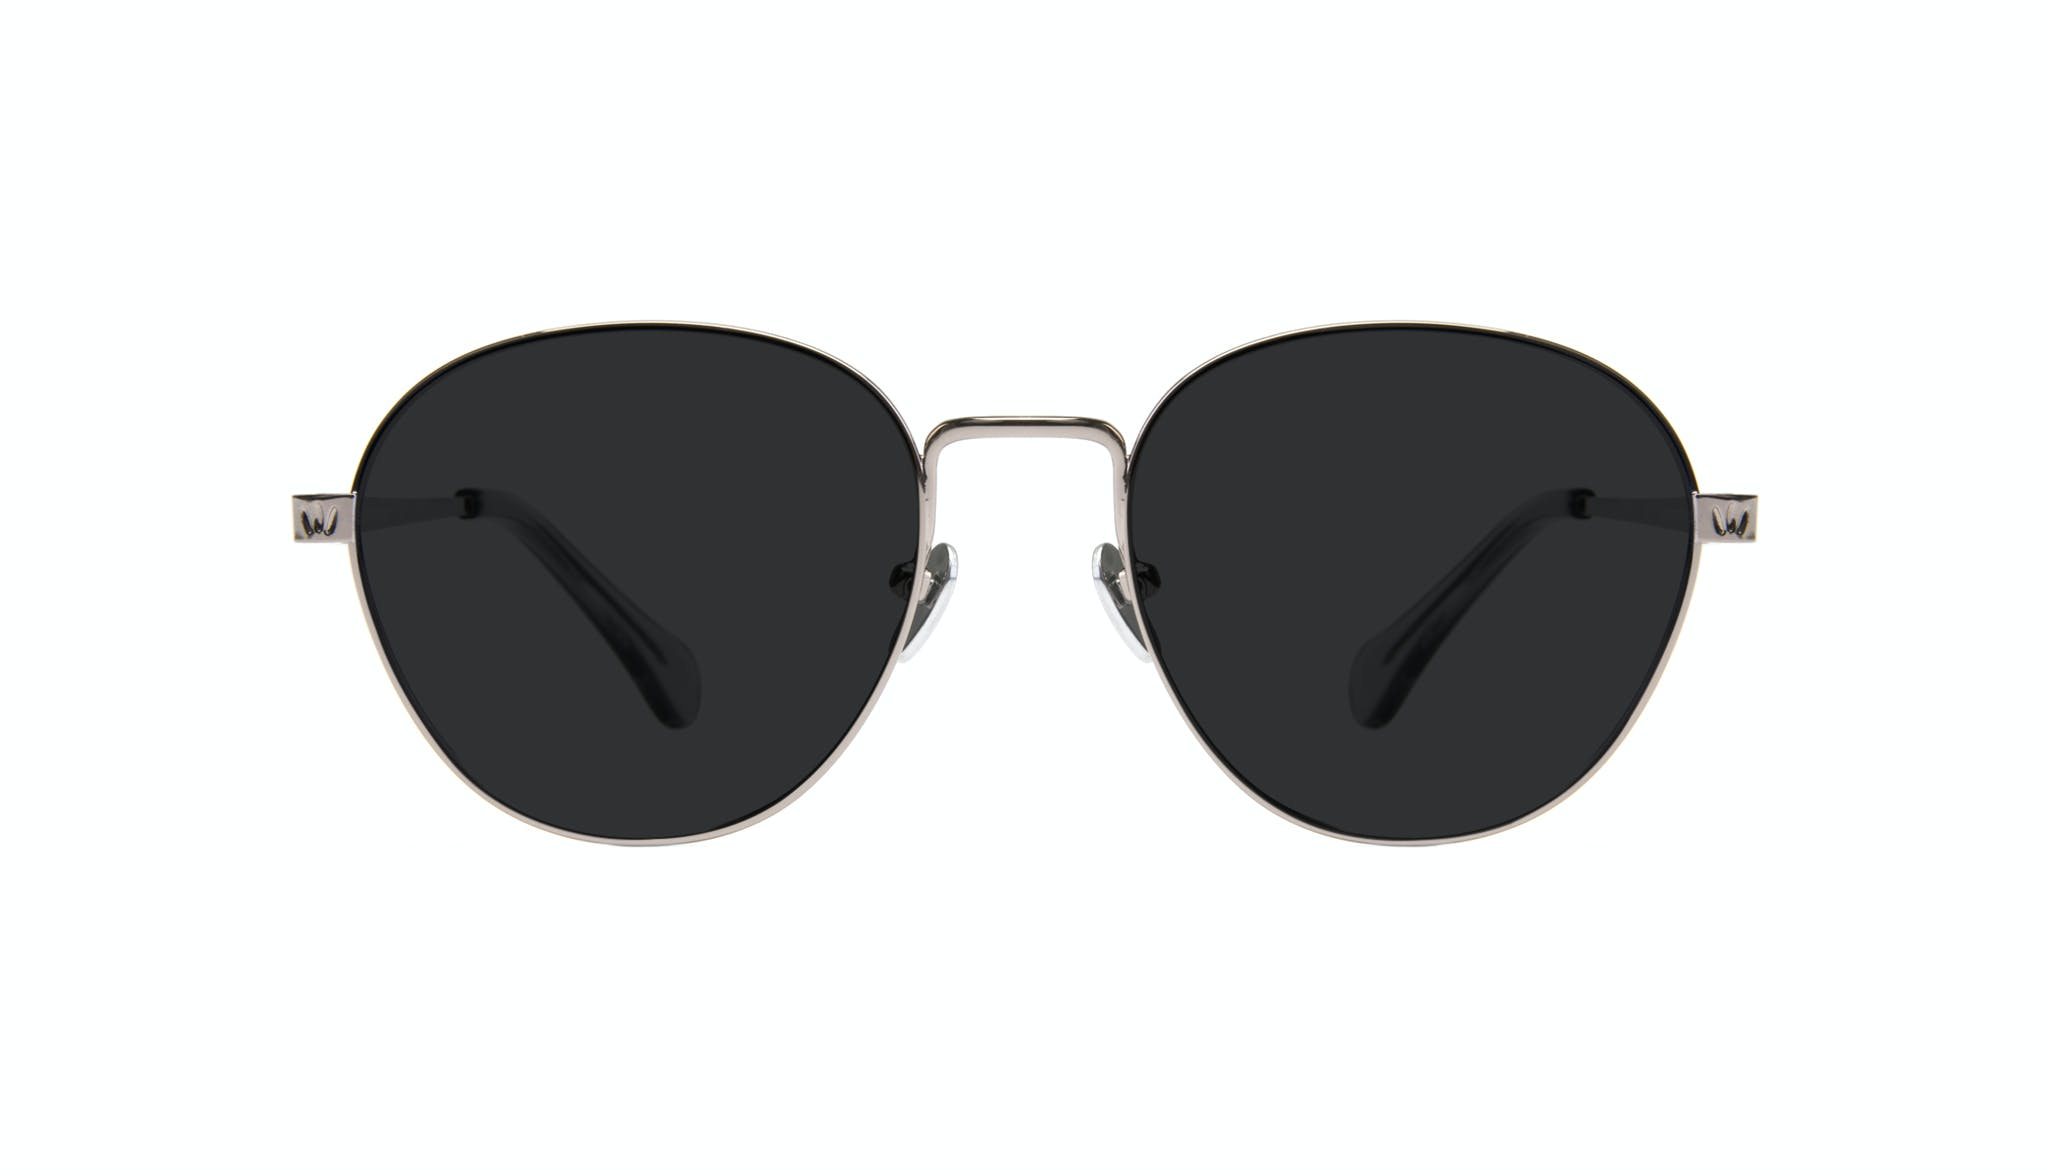 Affordable Fashion Glasses Round Sunglasses Women Brace Silver Front